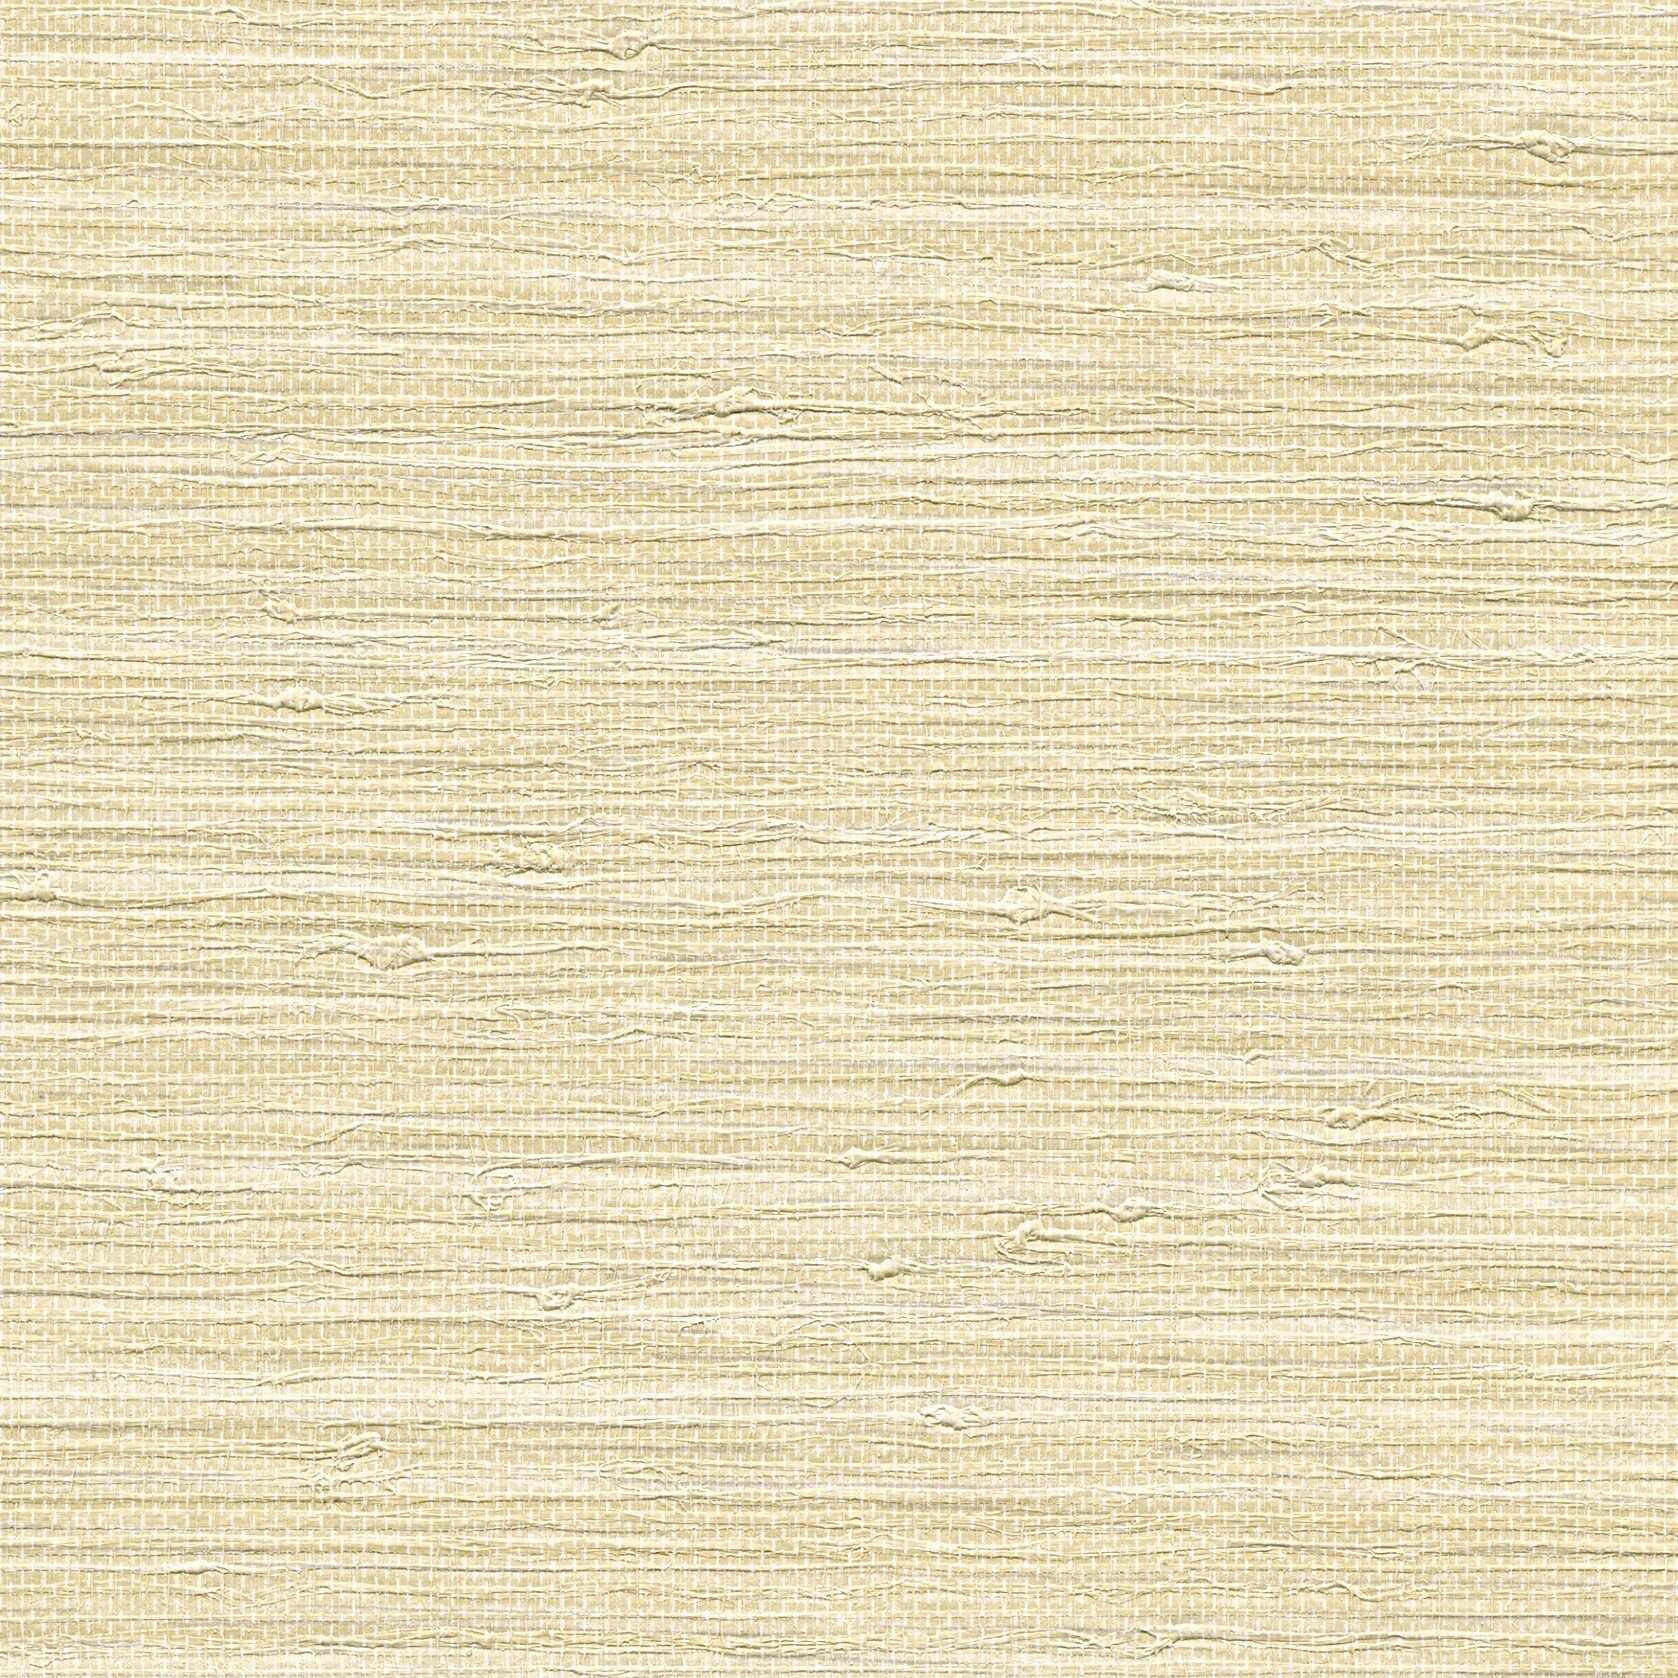 Brewster Island Grey Faux Grasscloth Wallpaper Fd23285: Online Home Store For Furniture, Decor